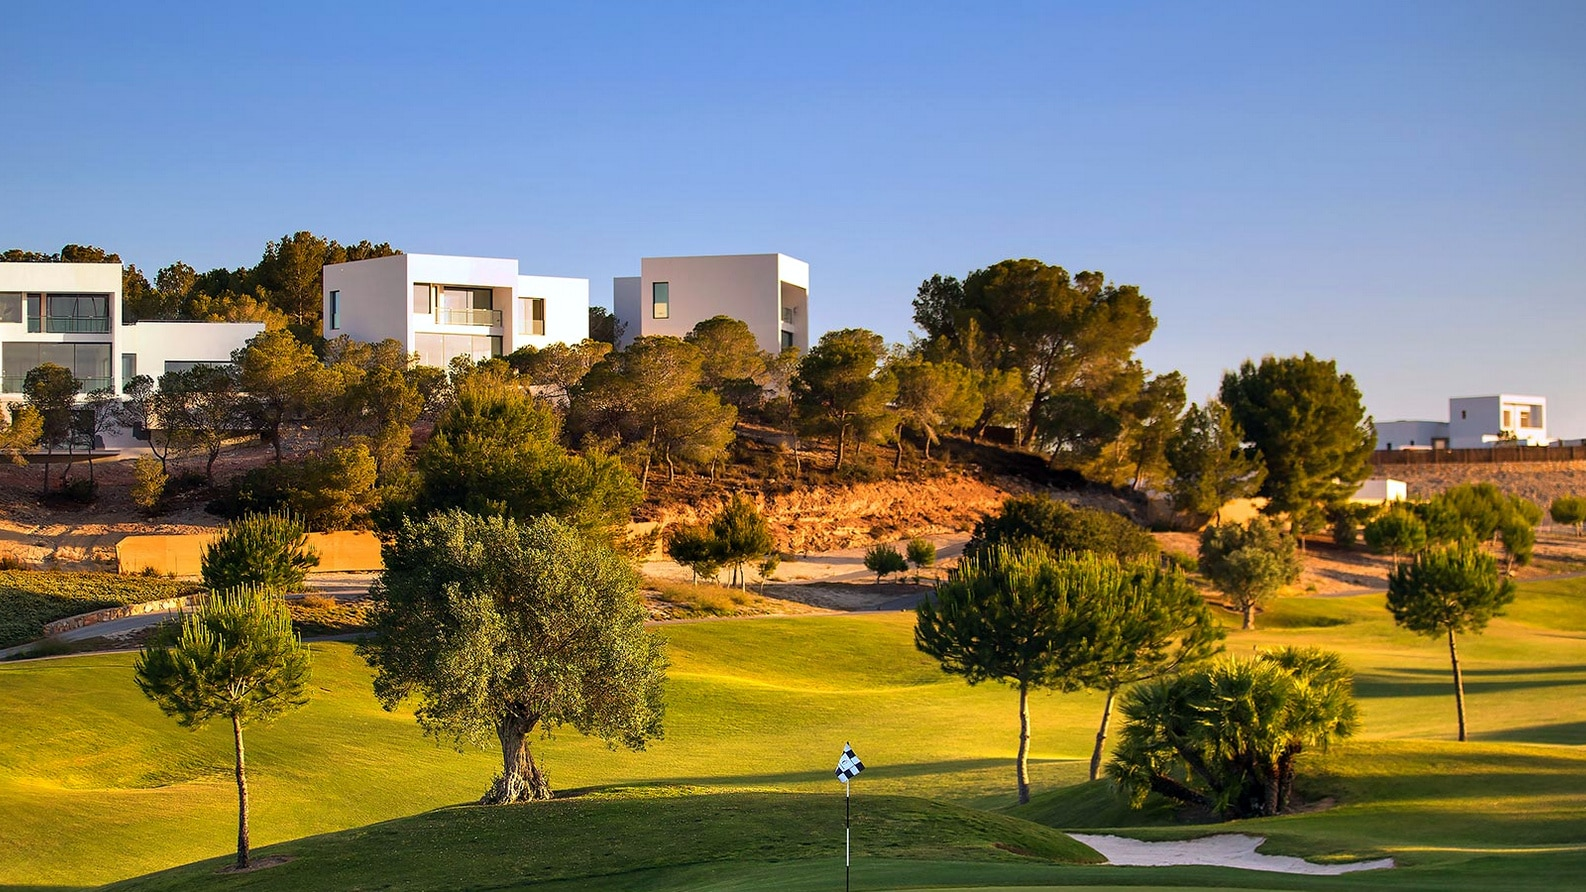 Villas sur golf - Alicante - Costa Blanca